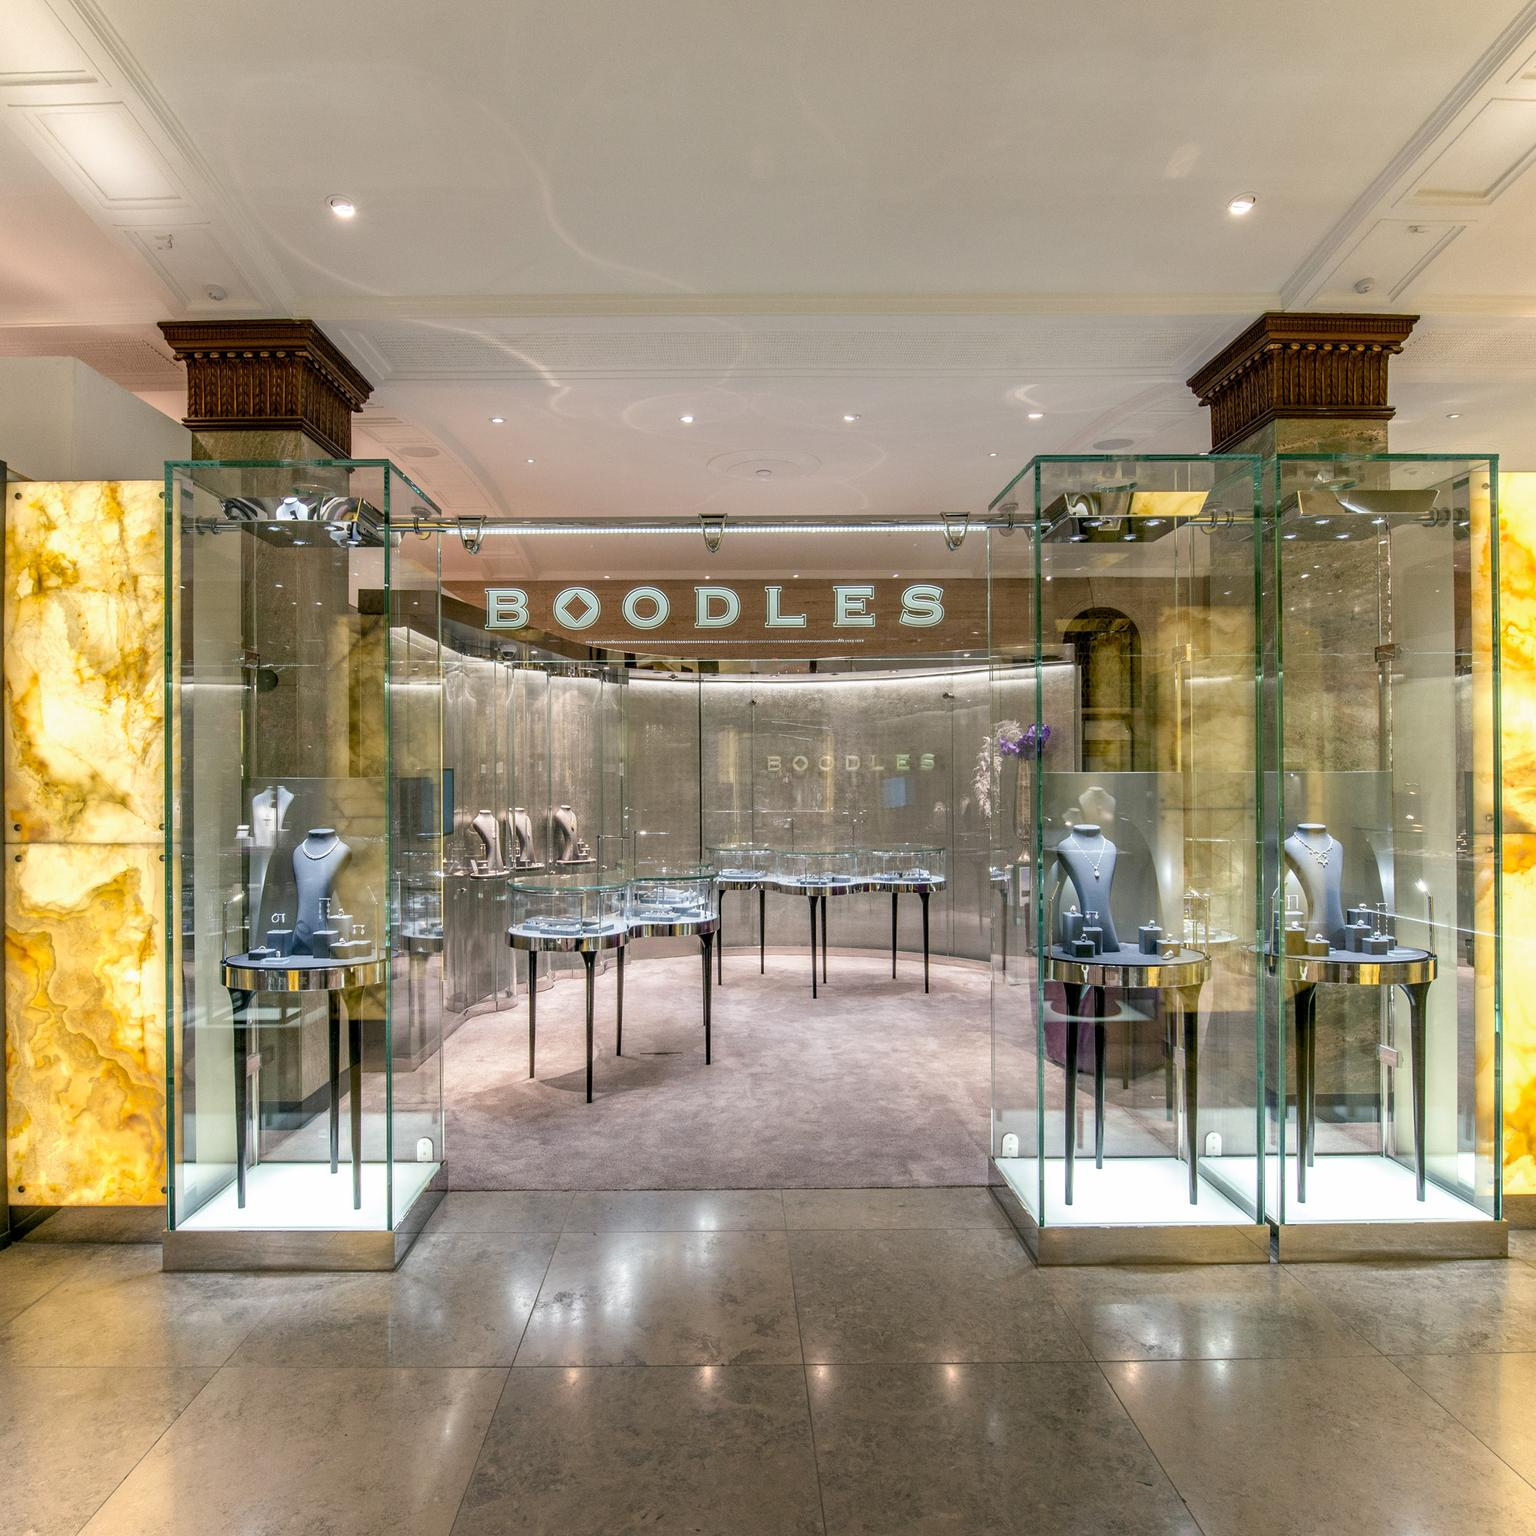 Boodles boutique at Harrods